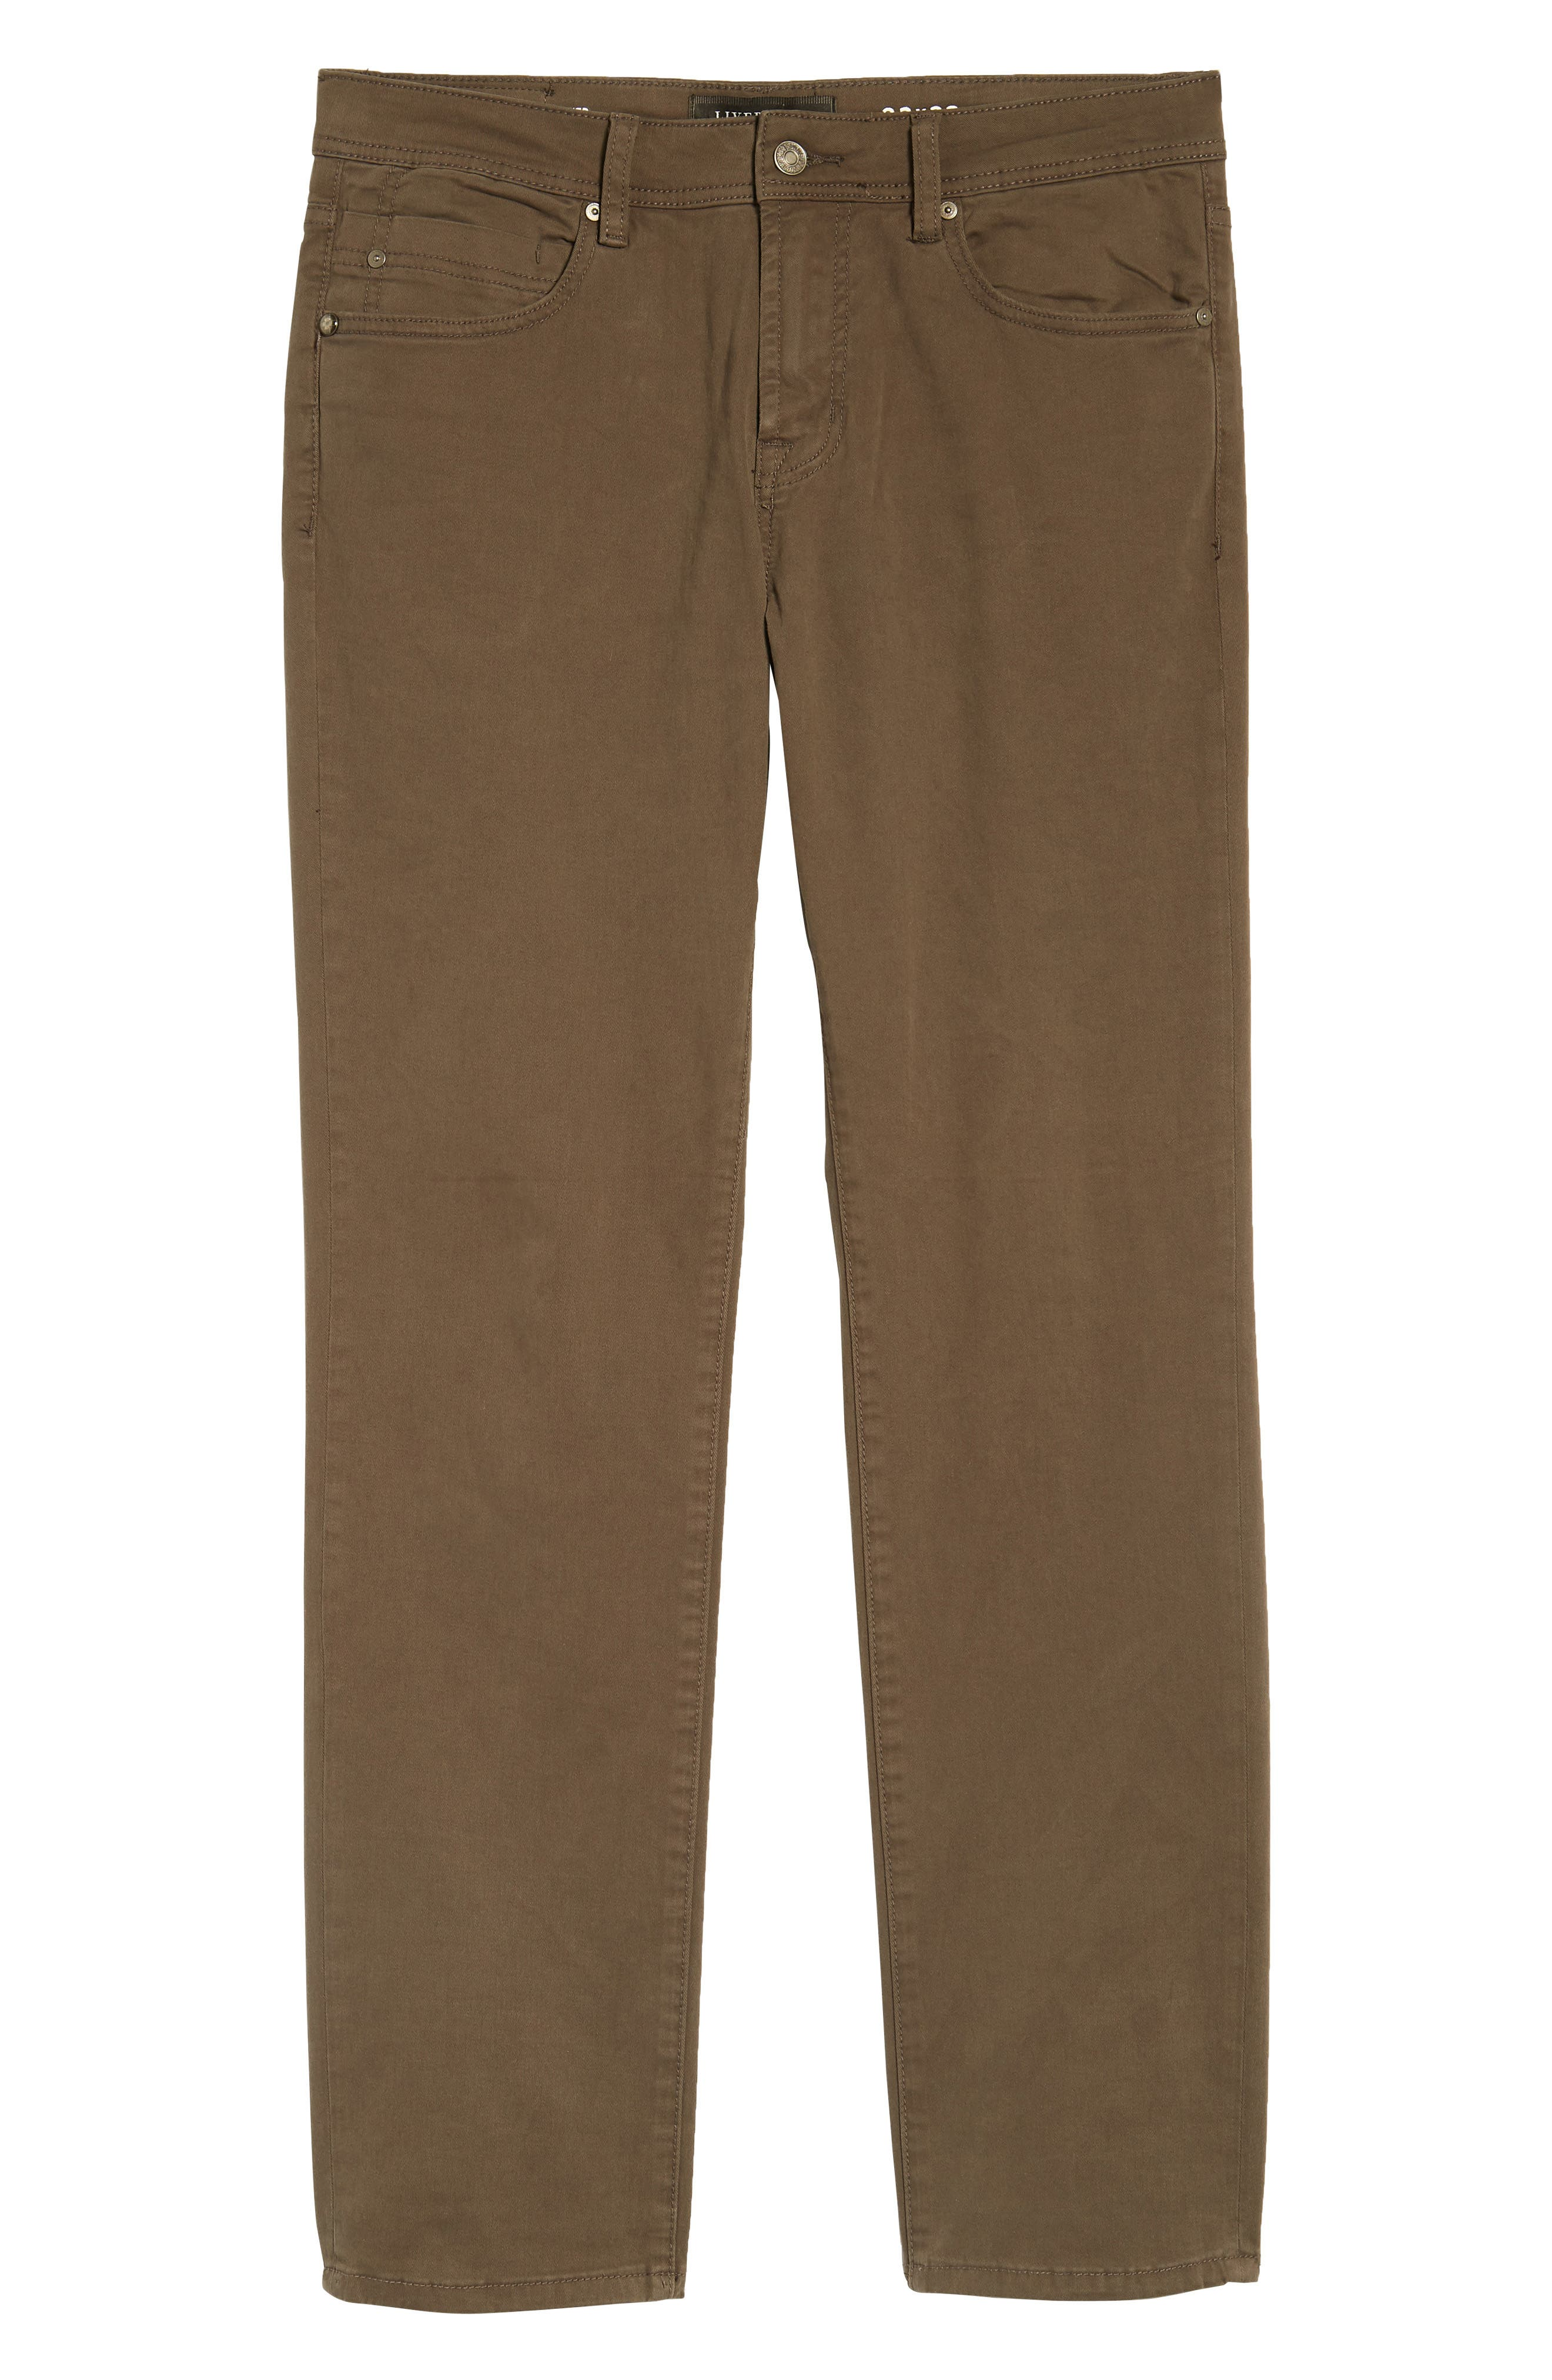 Jeans Co. Regent Relaxed Fit Jeans,                             Alternate thumbnail 6, color,                             DEEP EARTH